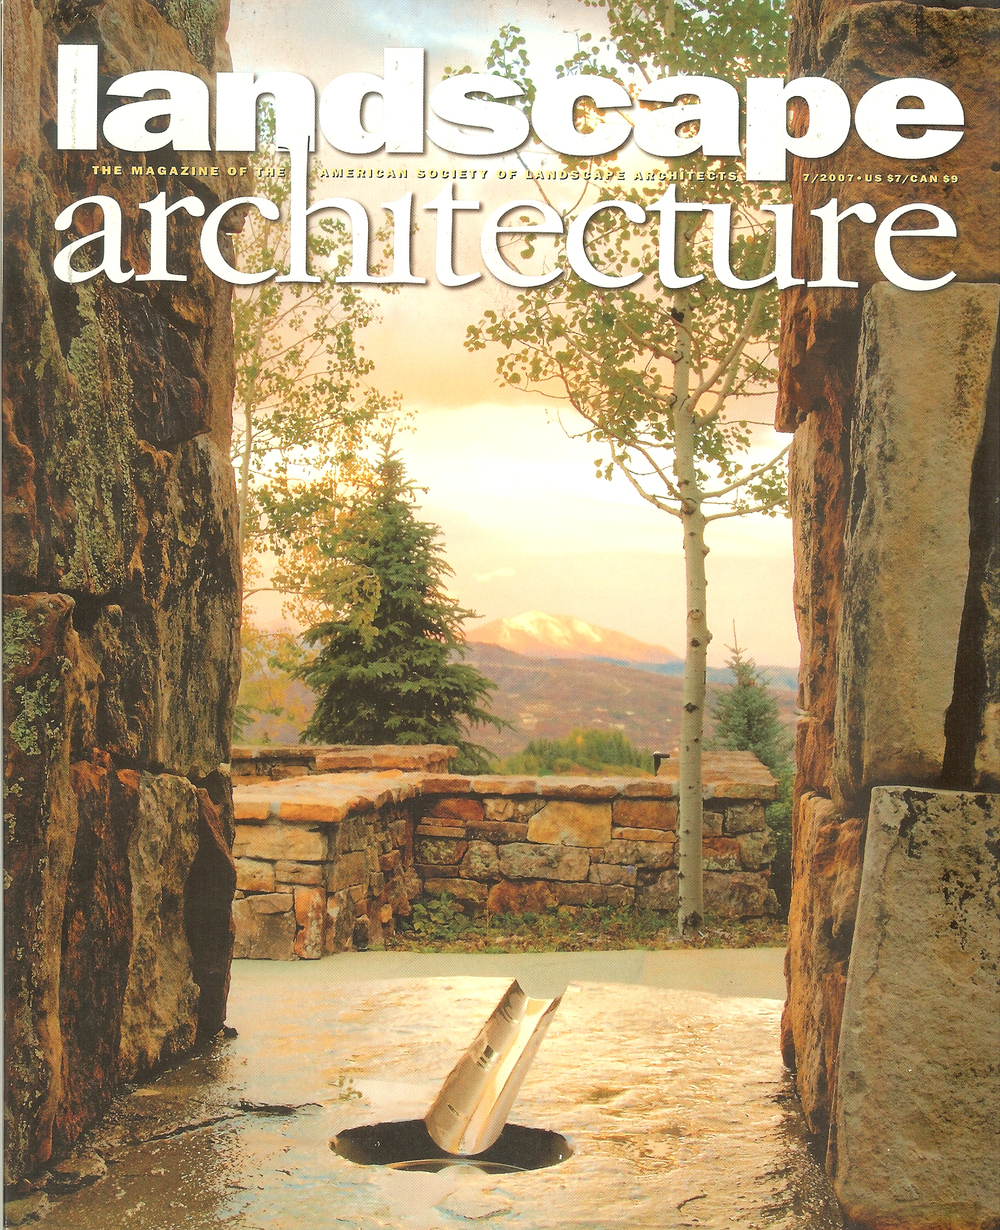 Landscape Architecture cover - July 2007.jpg